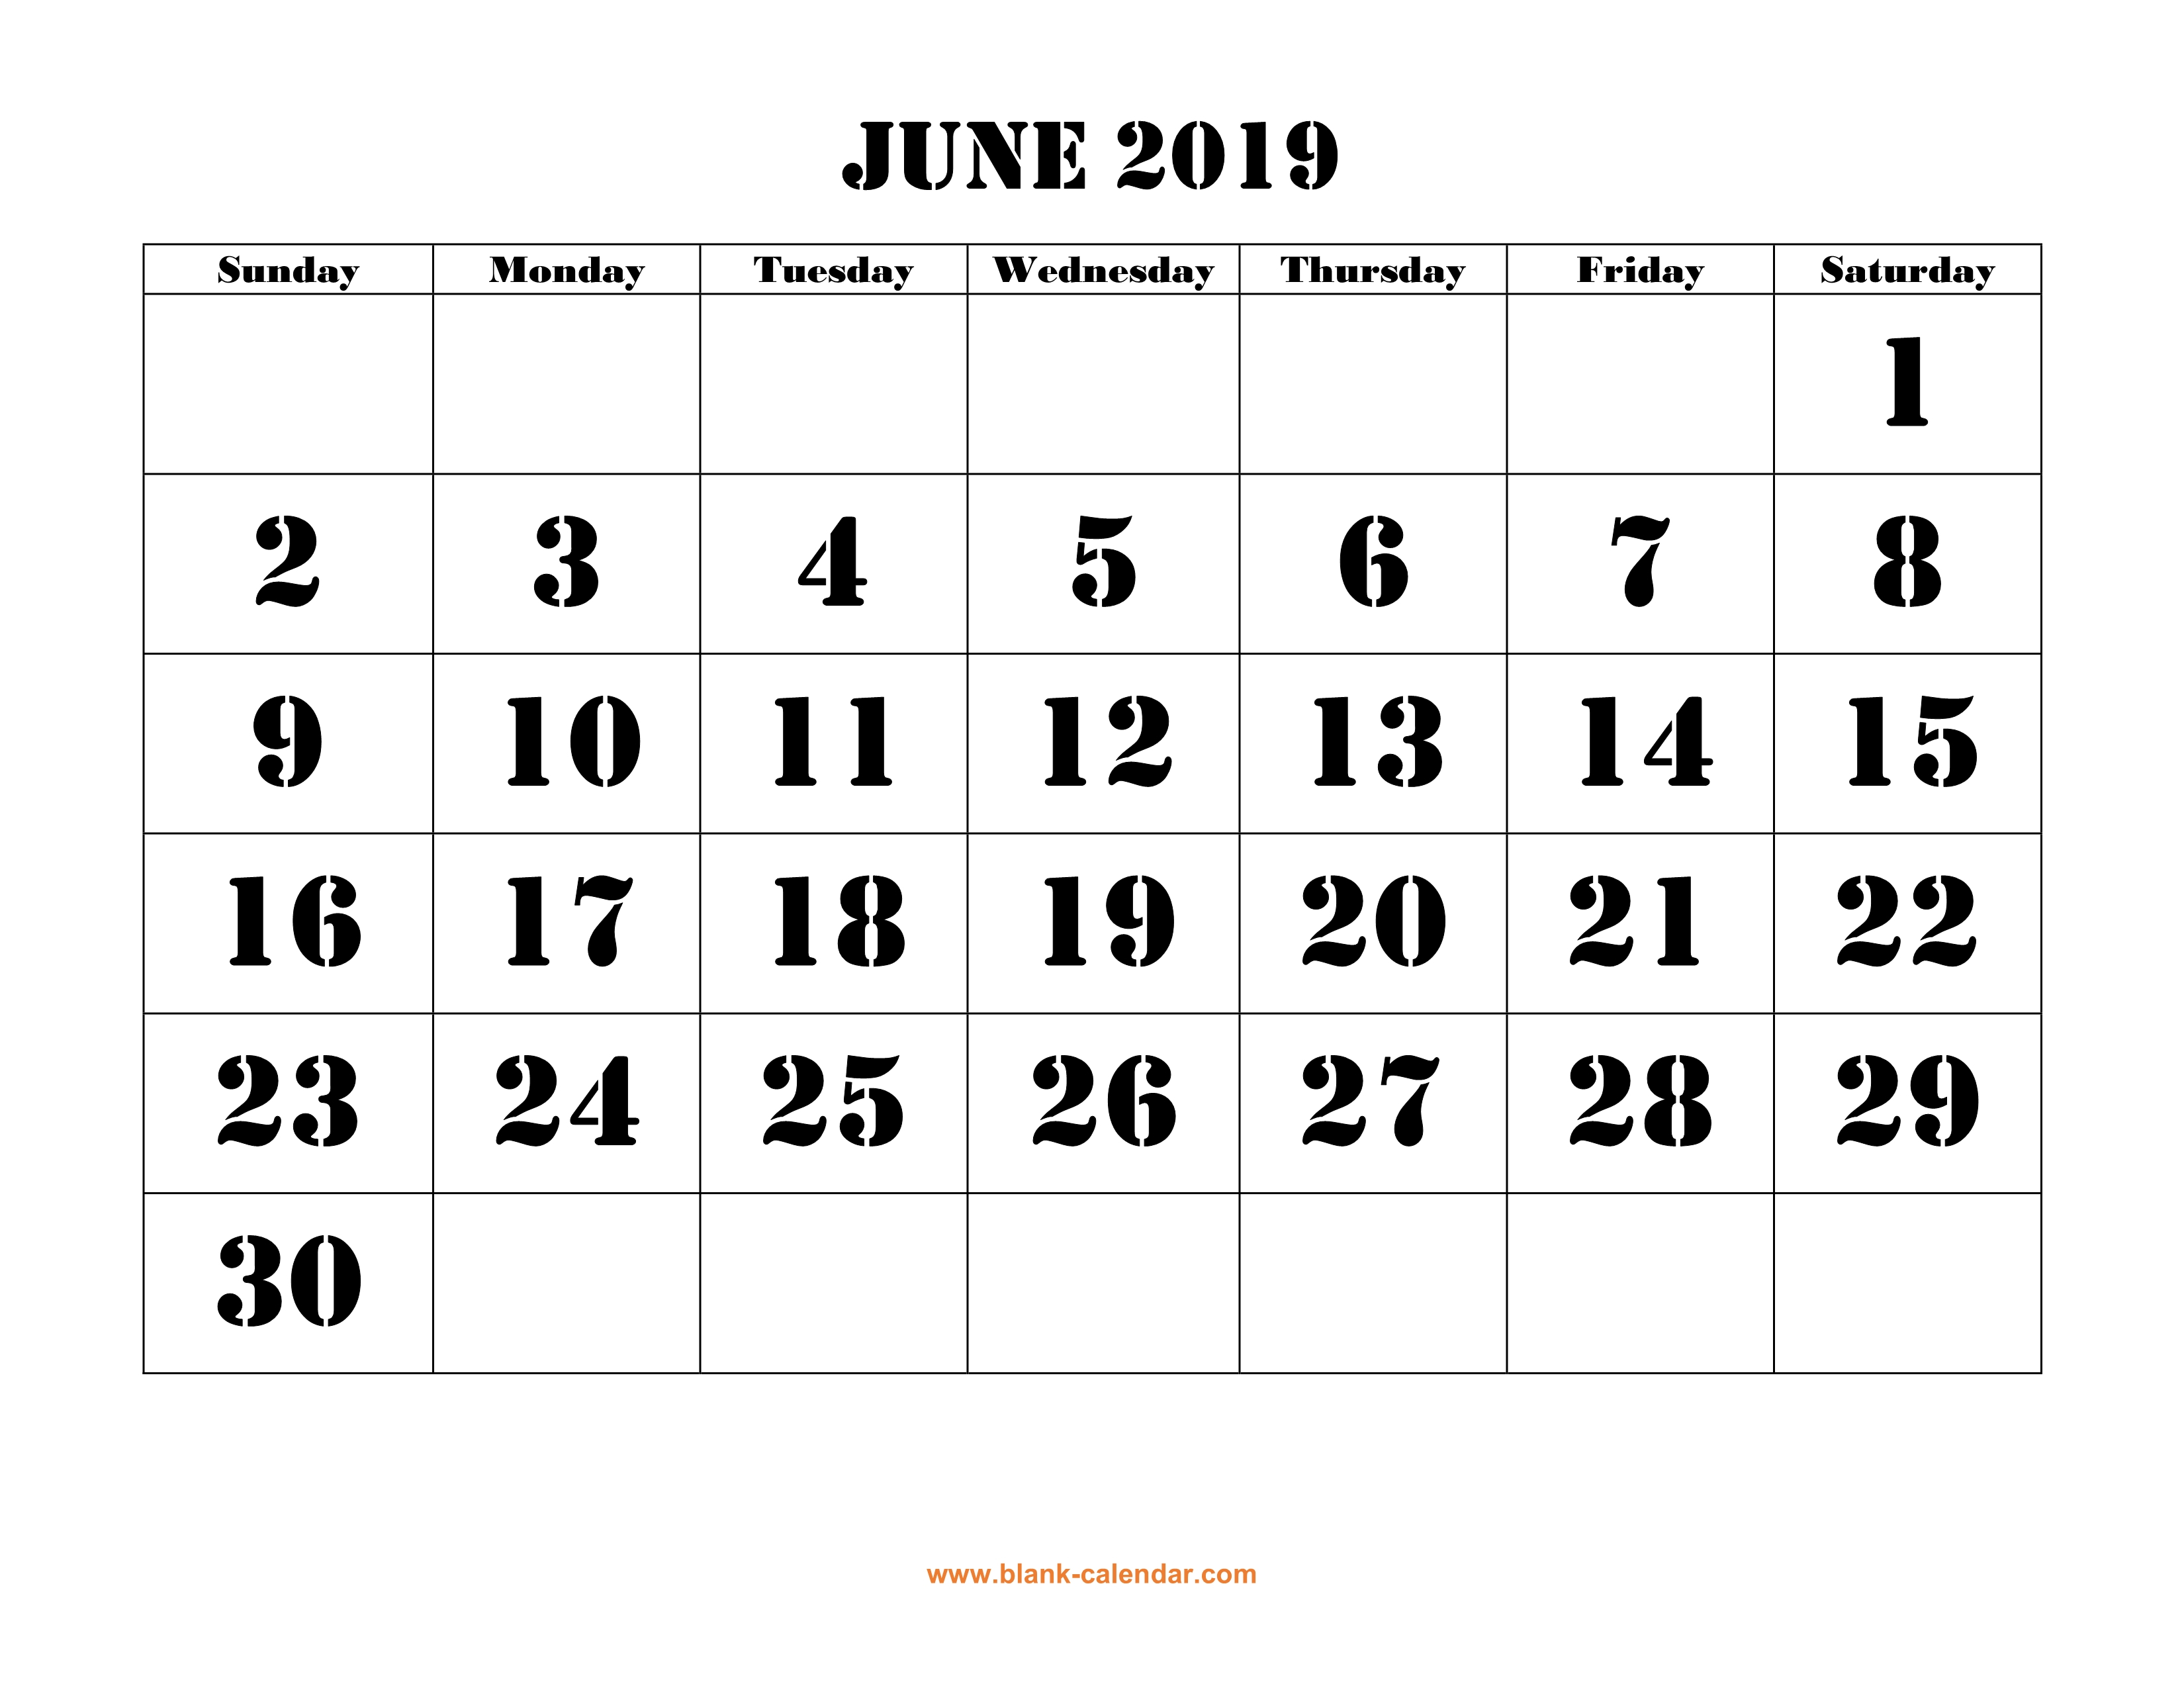 June 2019 Printable Calendar | Free Download Monthly Calendar Templates within Blank Calendar With Open Squares